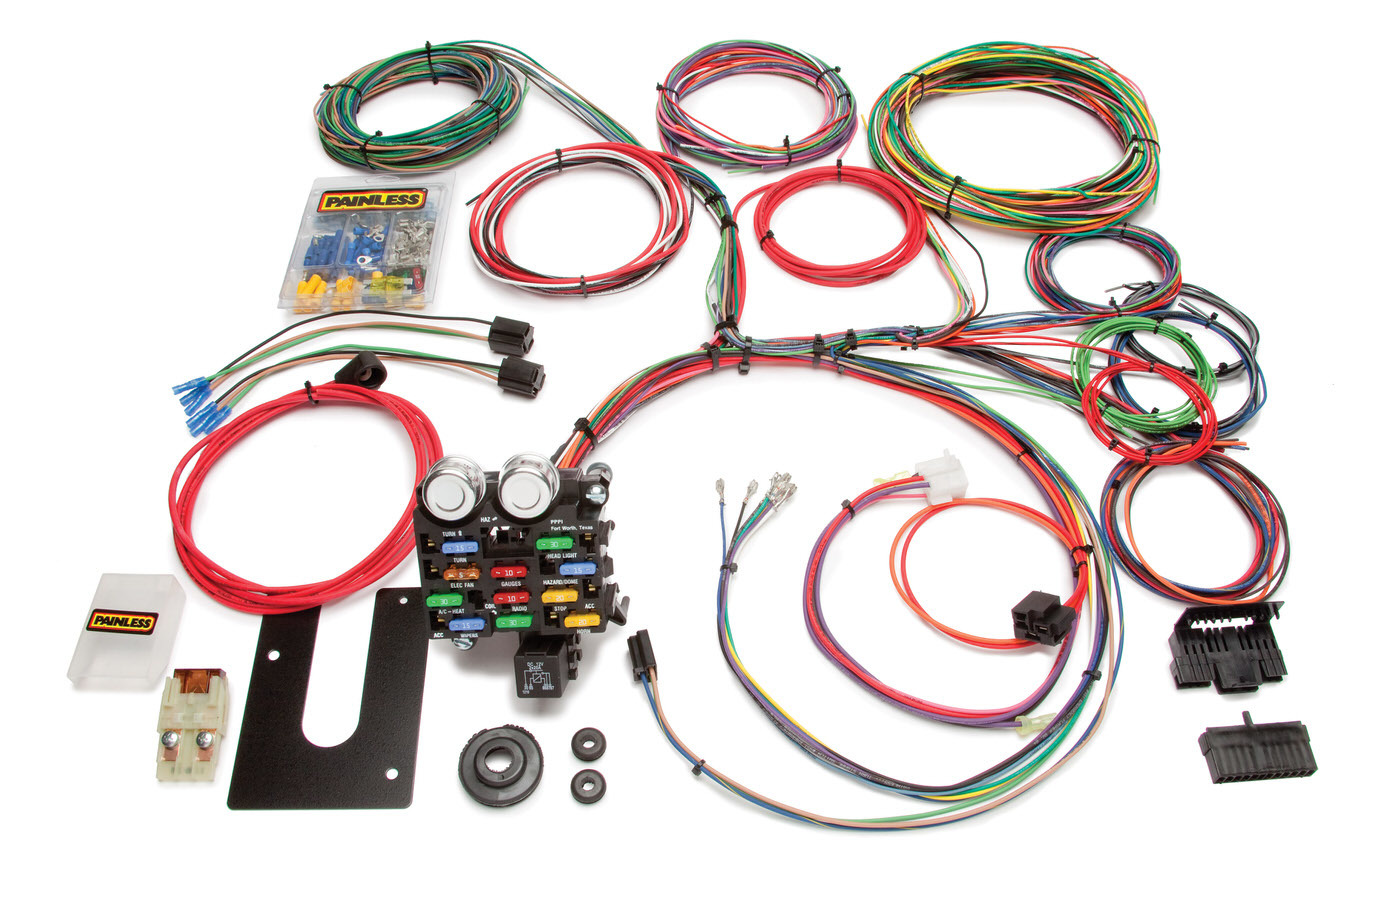 Painless Wiring 10101 Car Wiring Harness, Classic Customizable, Complete, 21 Circuit, Complete, Universal, Kit